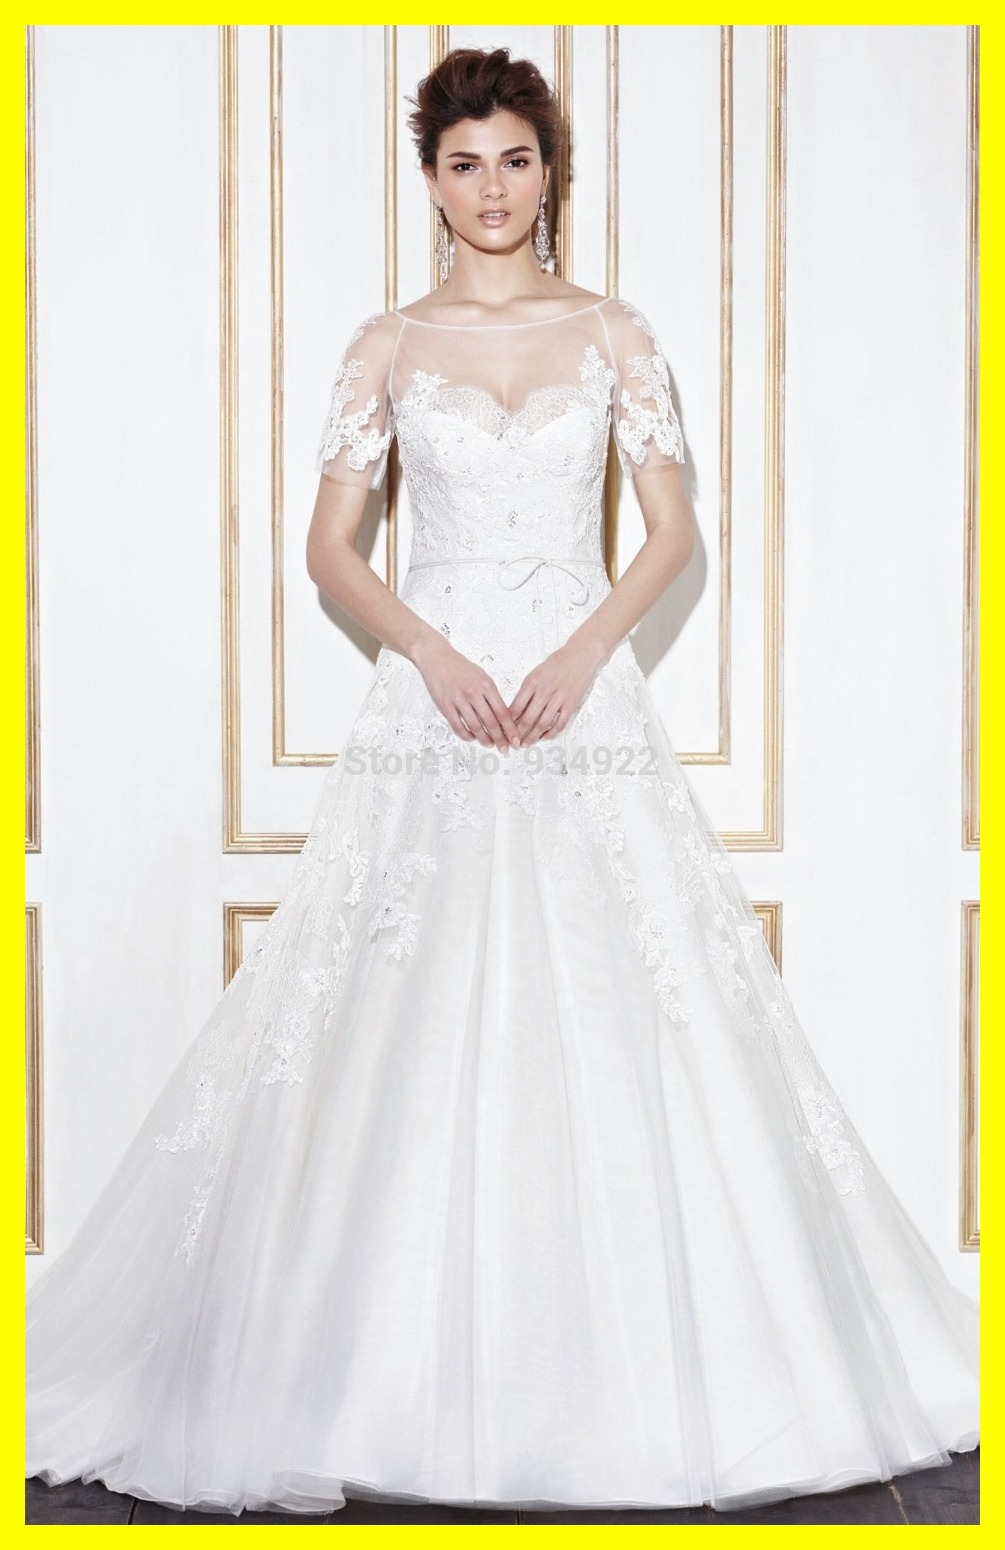 Short white wedding dresses guest victorian gypsy sale for Sale dresses for wedding guests